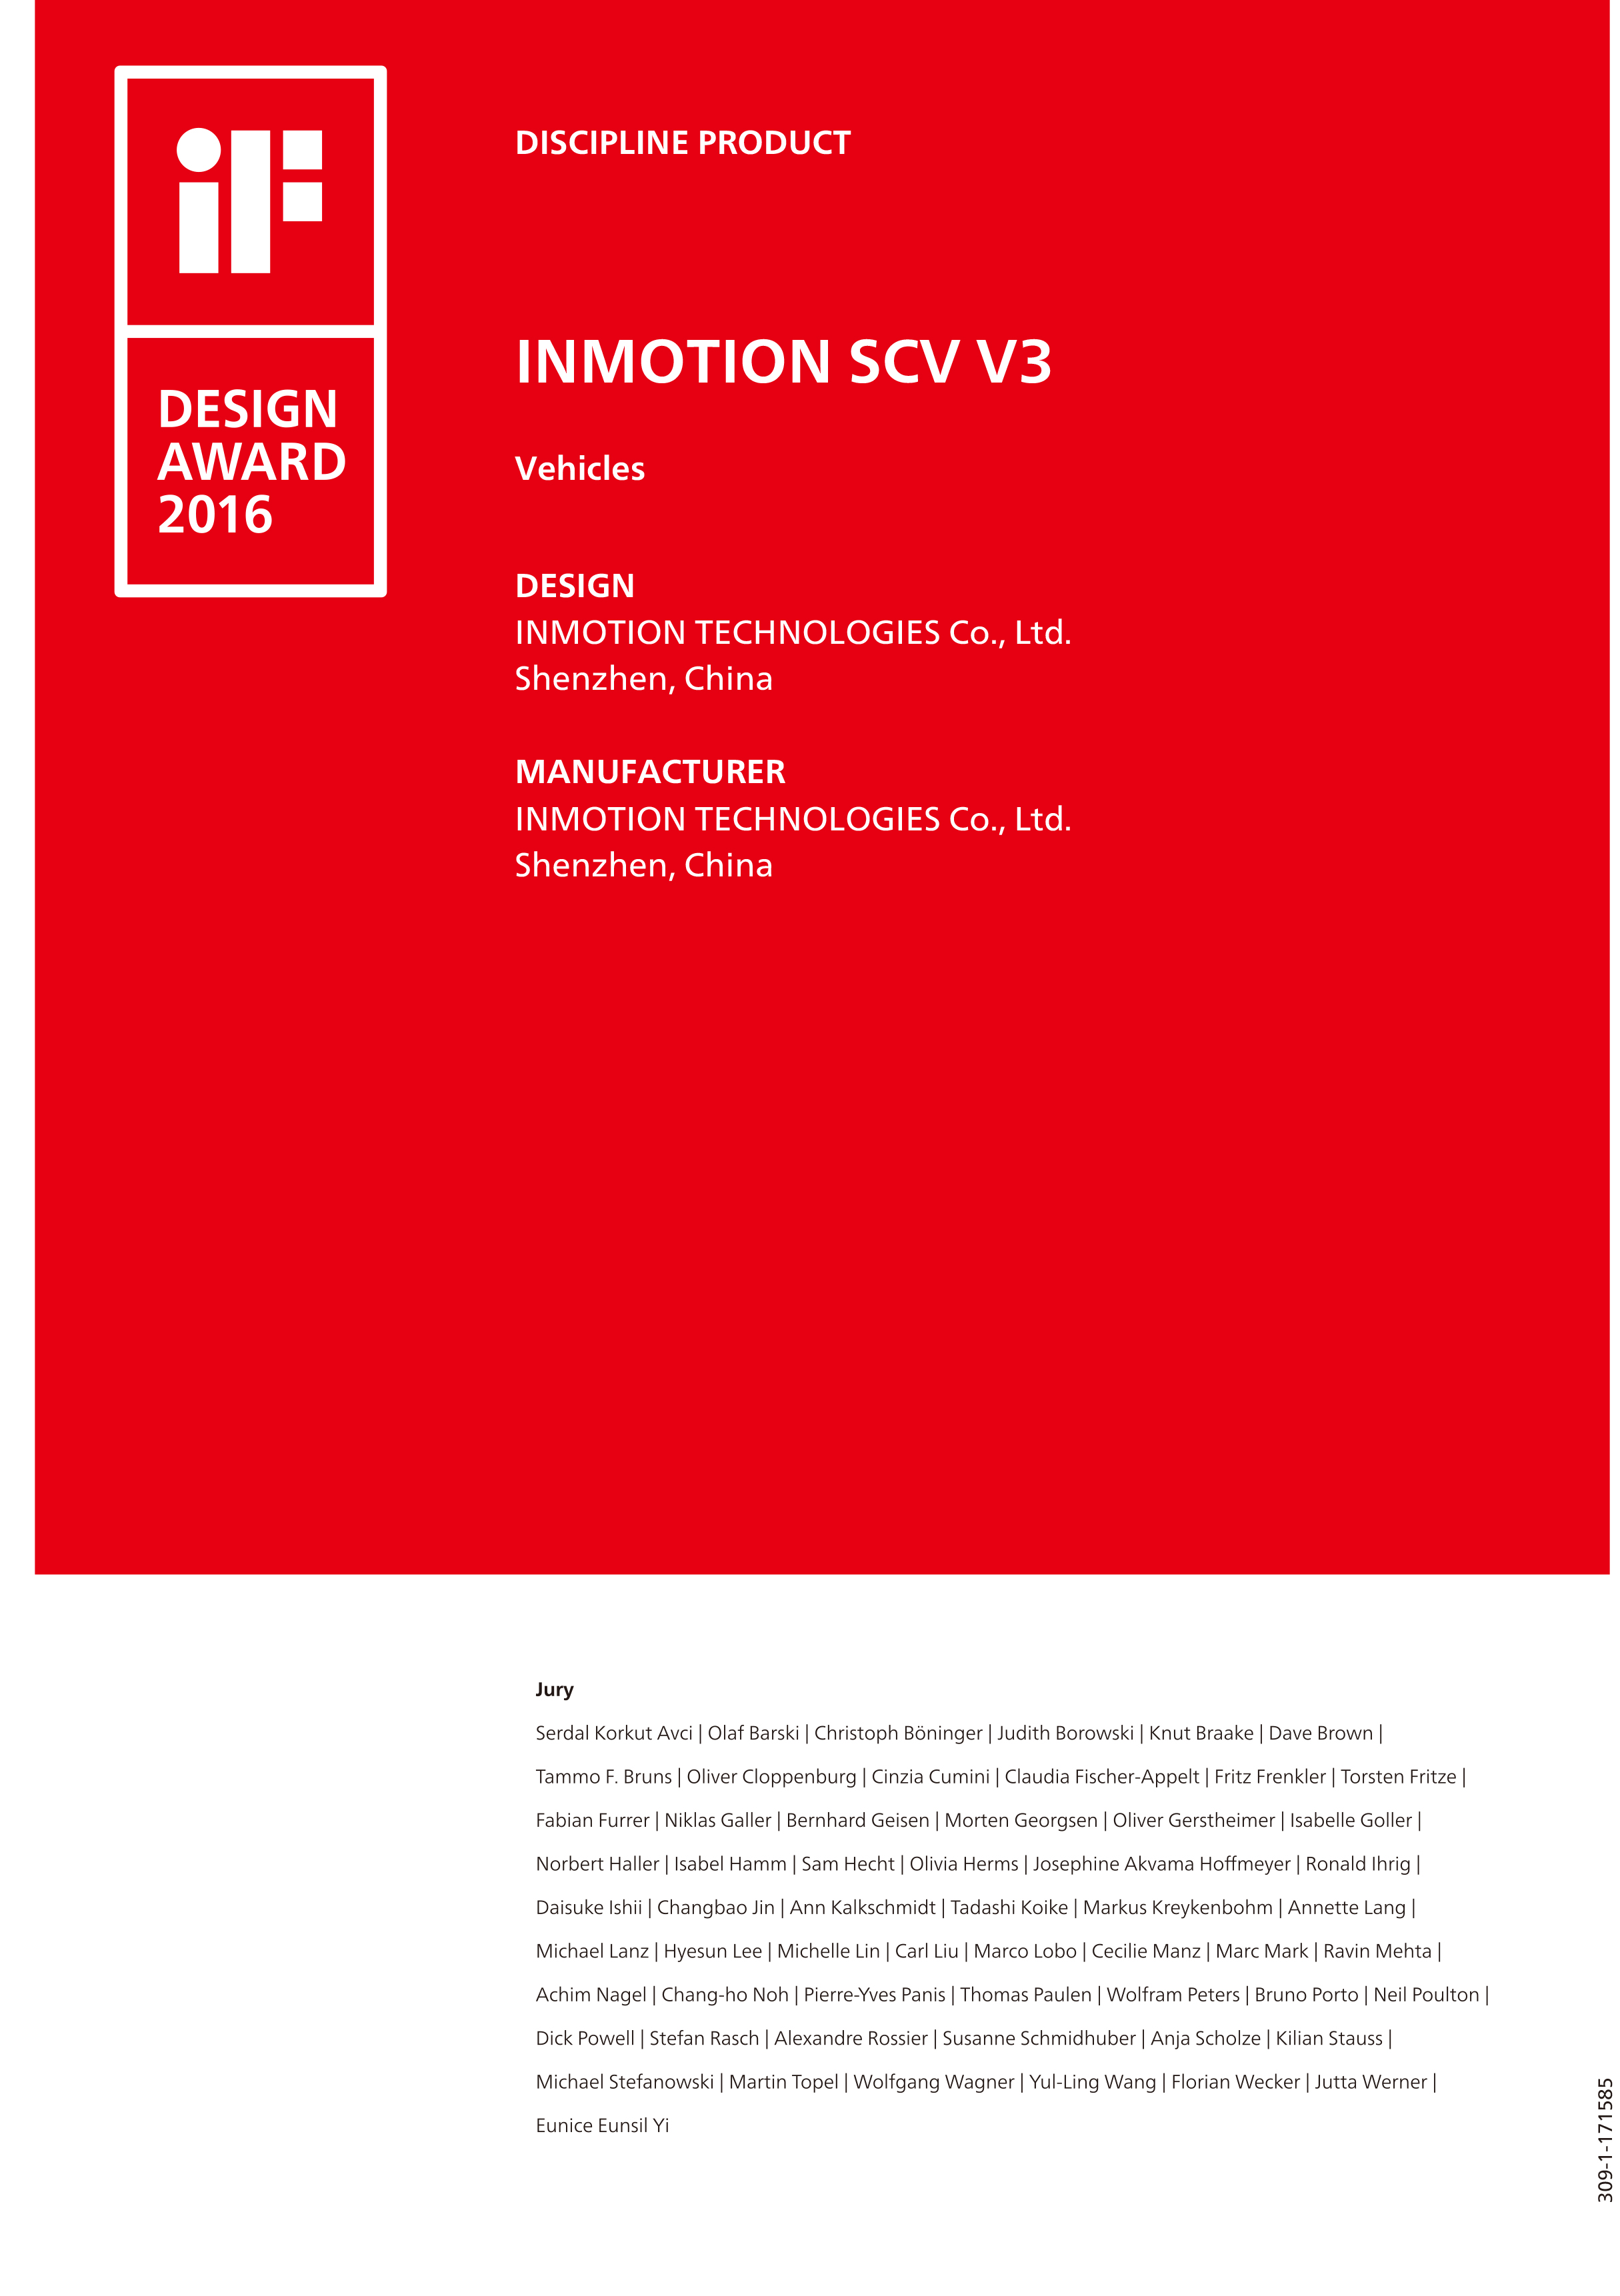 inmotion v3 won iF DESIGN AWARD